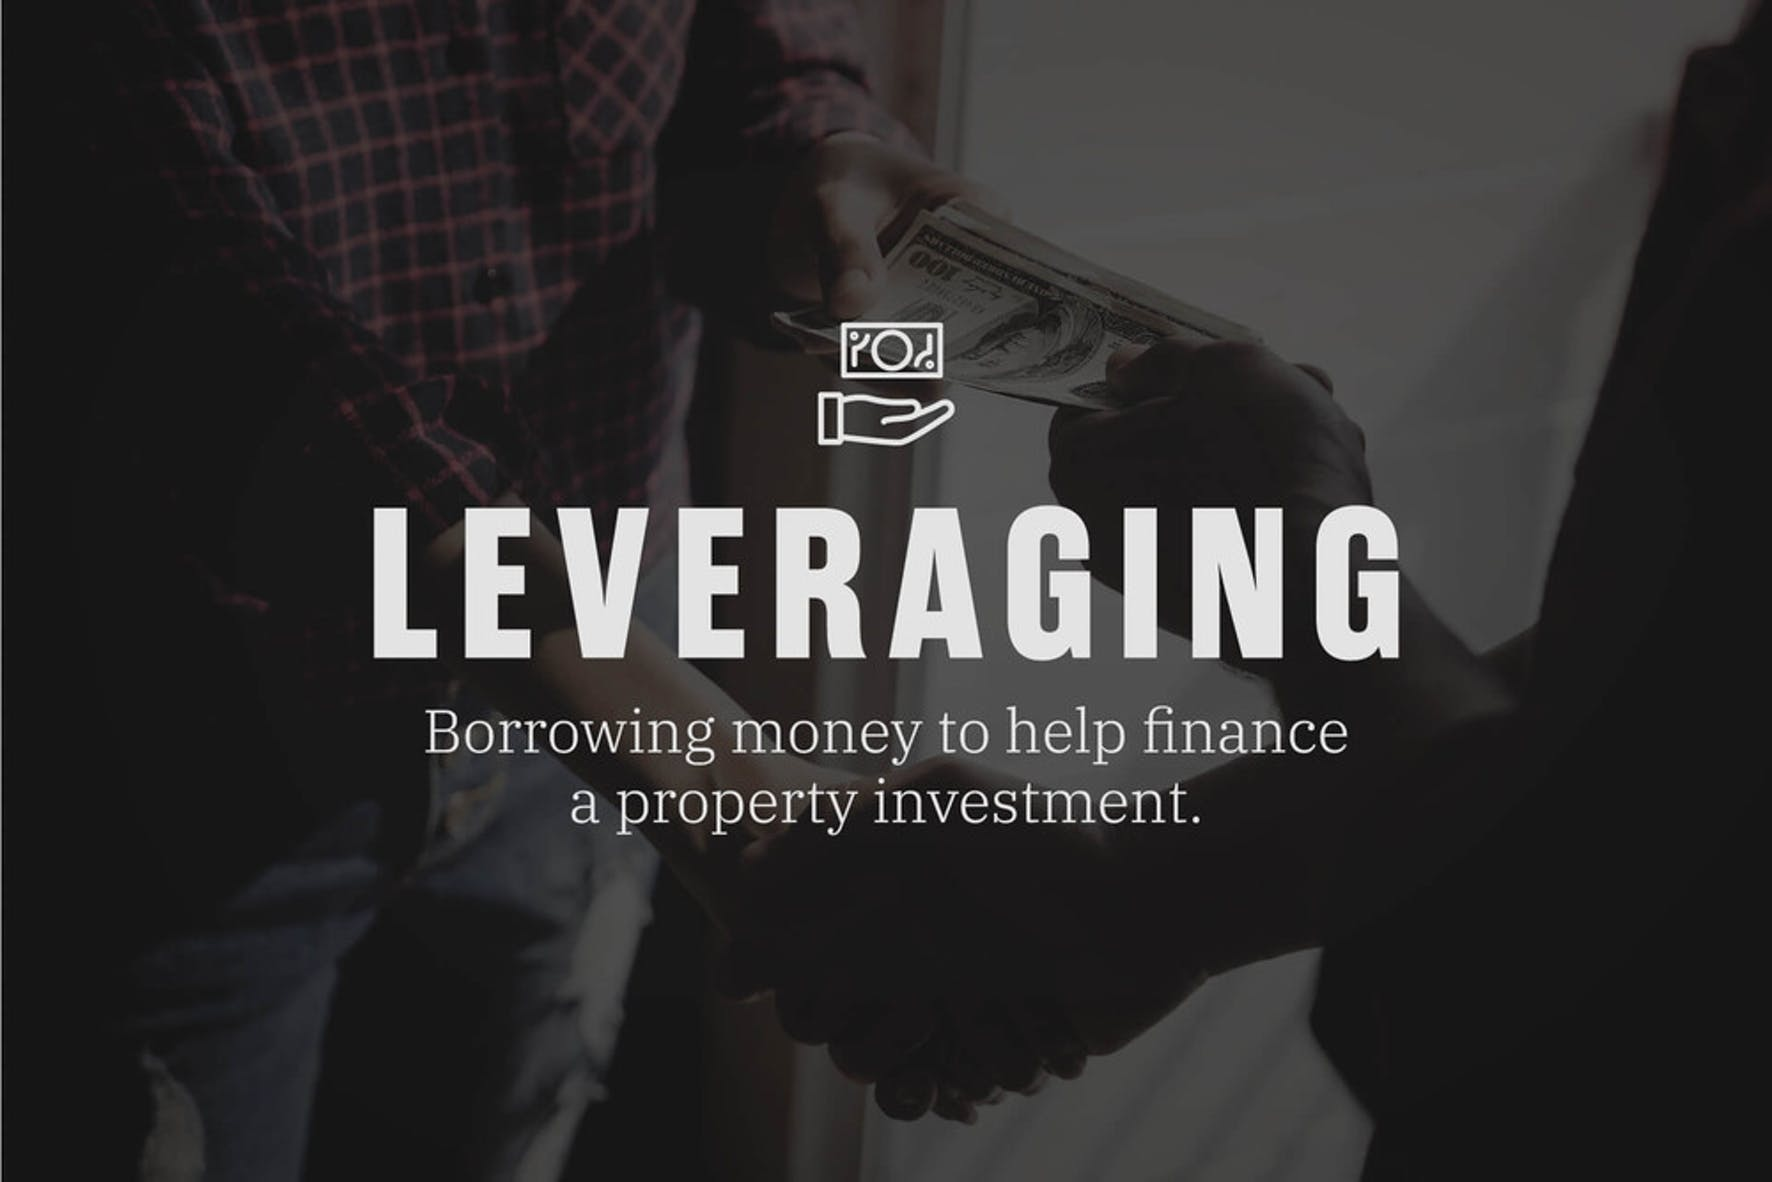 What is leveraging? When you borrow money to help finance a property investment